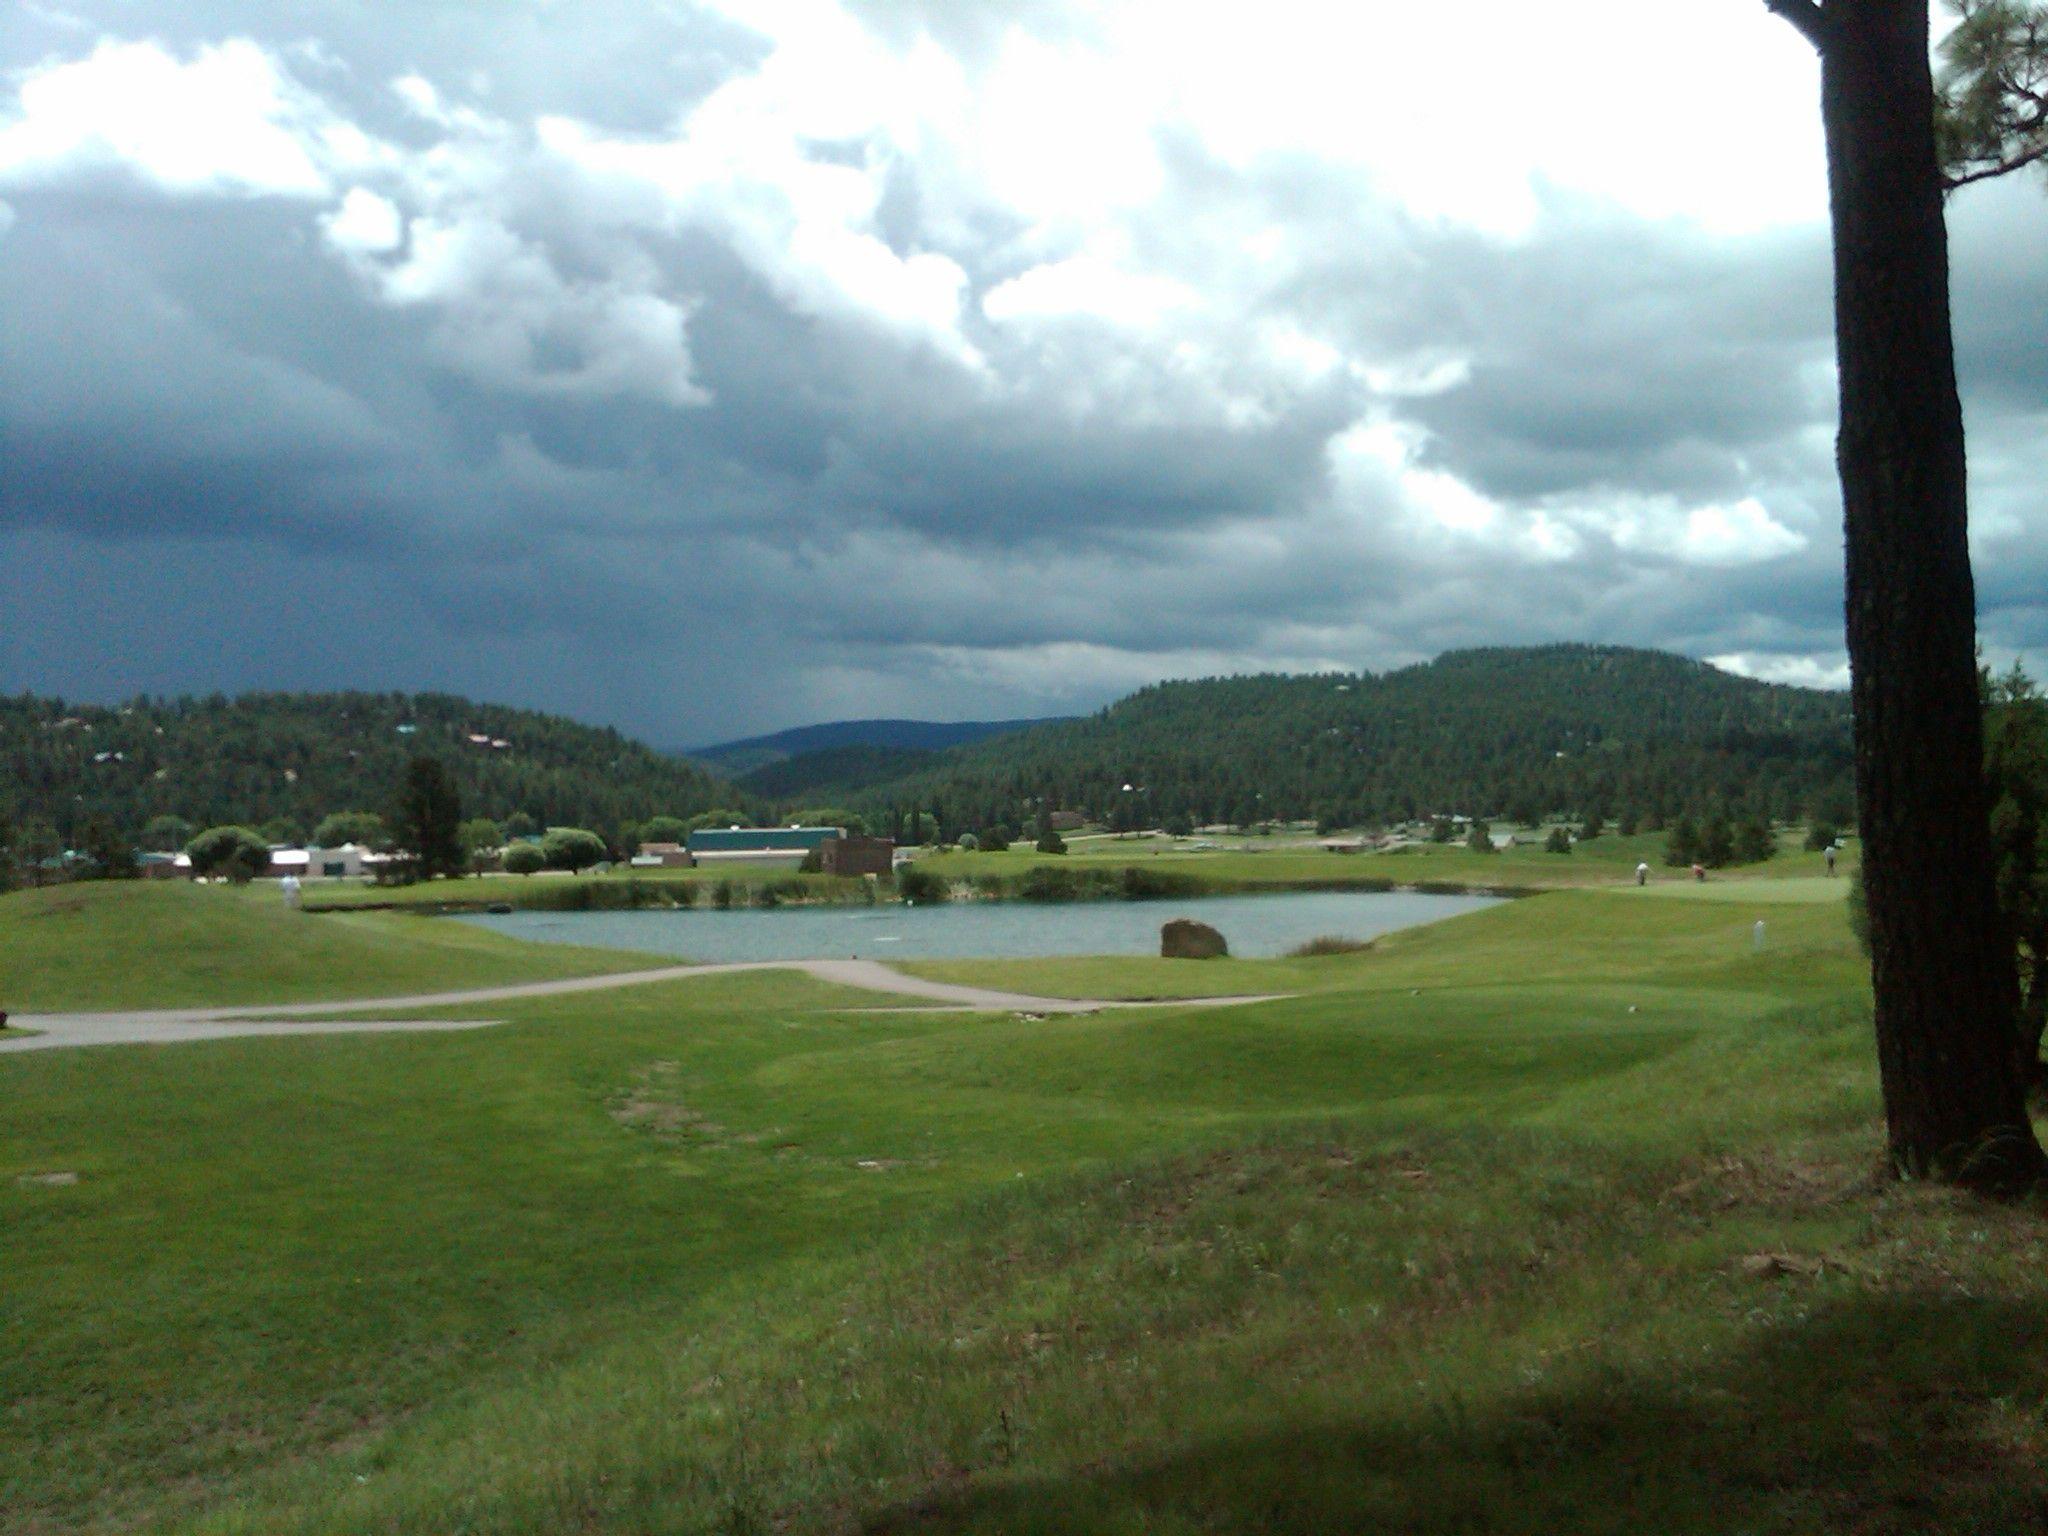 View from my vacation place in Ruiodoso, NM